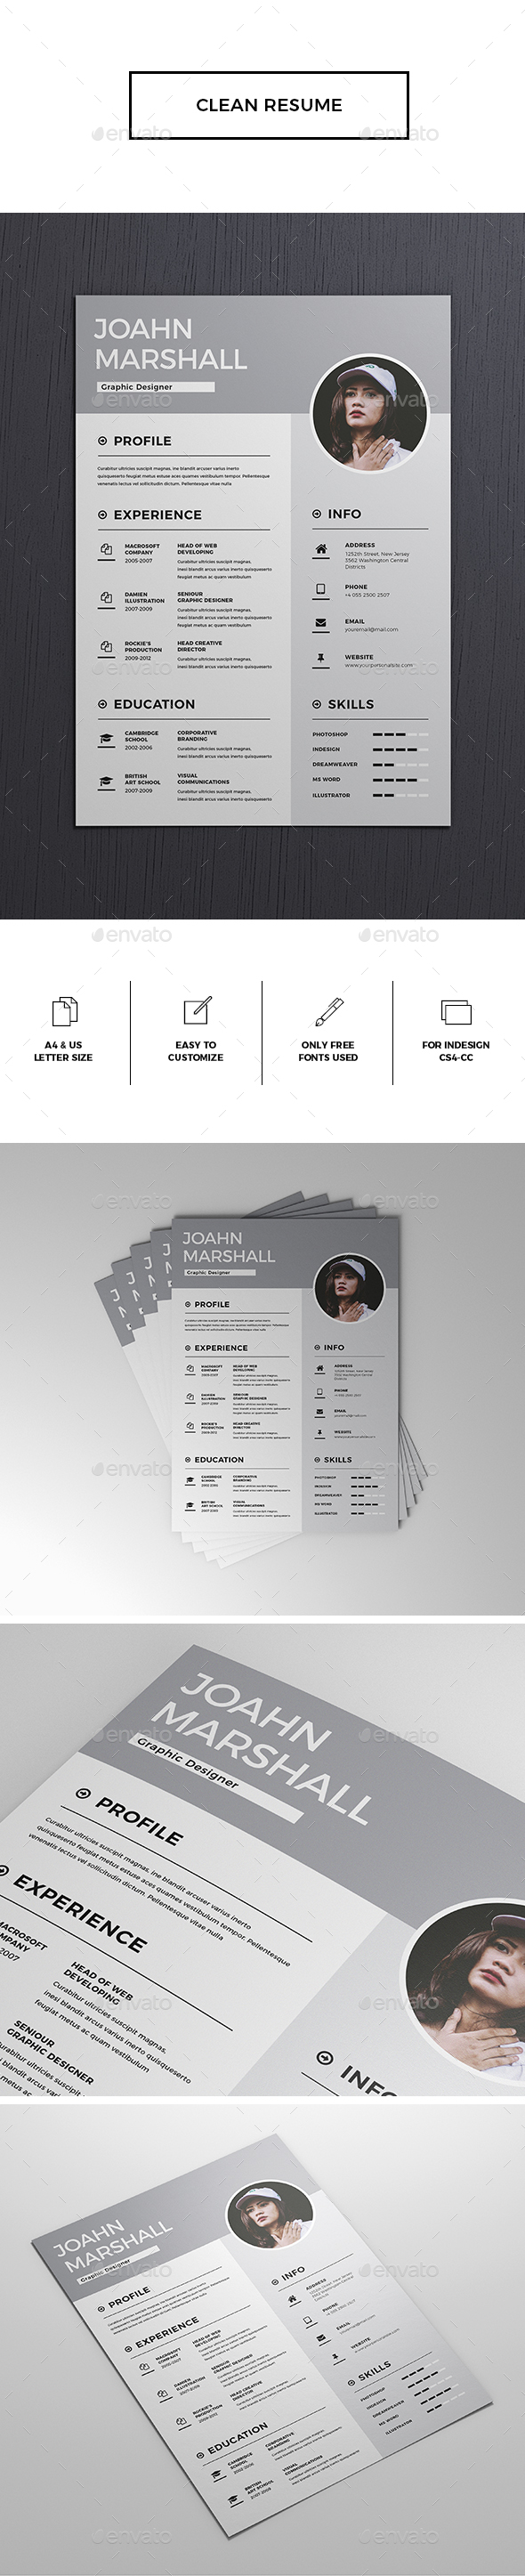 GraphicRiver Clean Resume CV 20934142